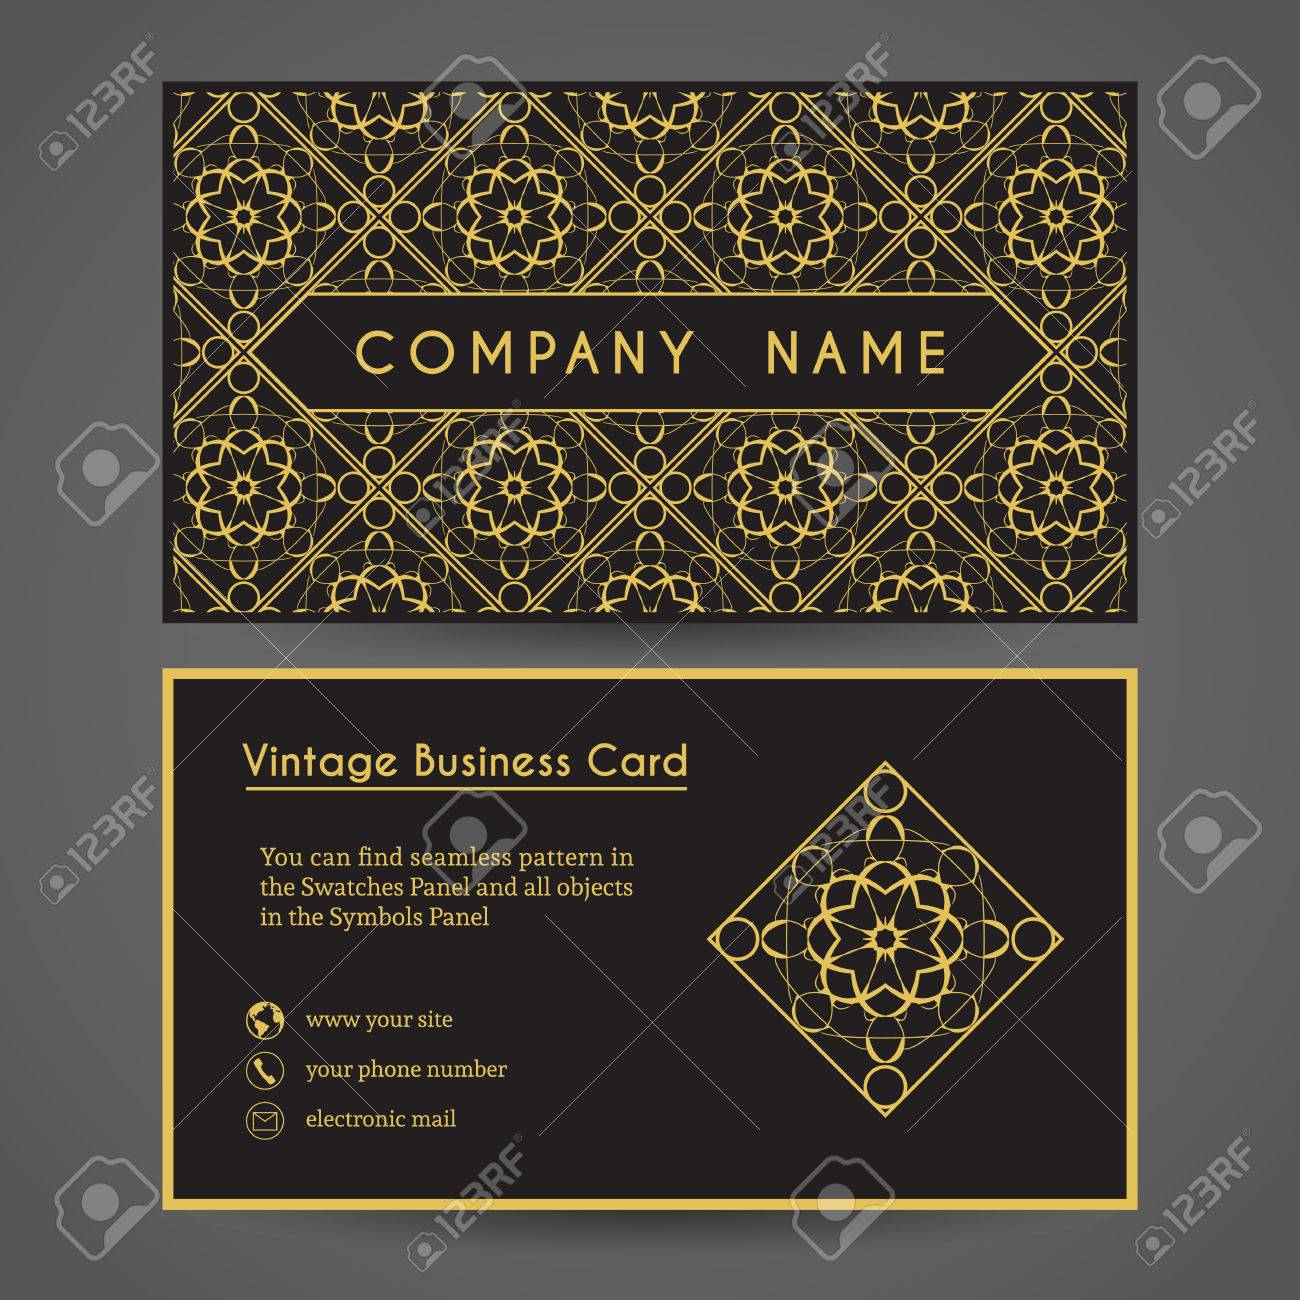 Front and back business card template word images templates front and back business card template word choice image free 100 front and back business card magicingreecefo Images